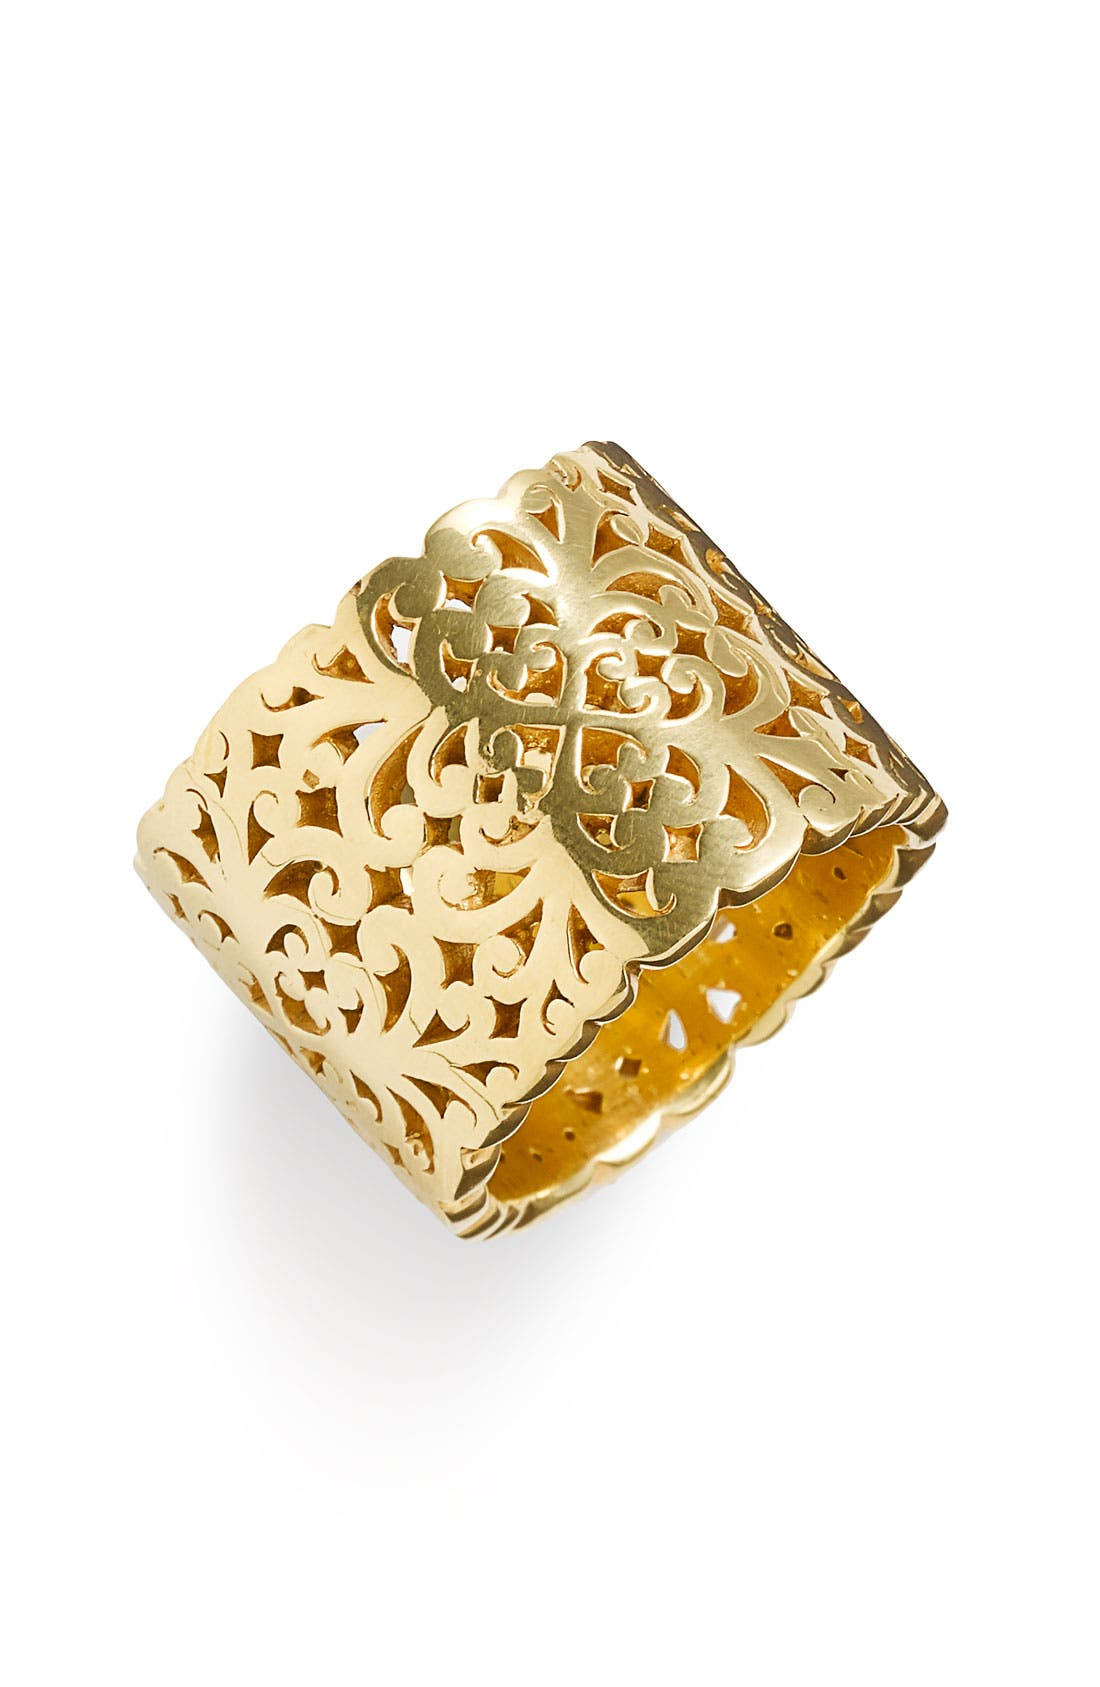 Alternate Image 1 Selected - Lois Hill 'Two Tone Organic Geo' Cigar Band Ring (Nordstrom Exclusive)